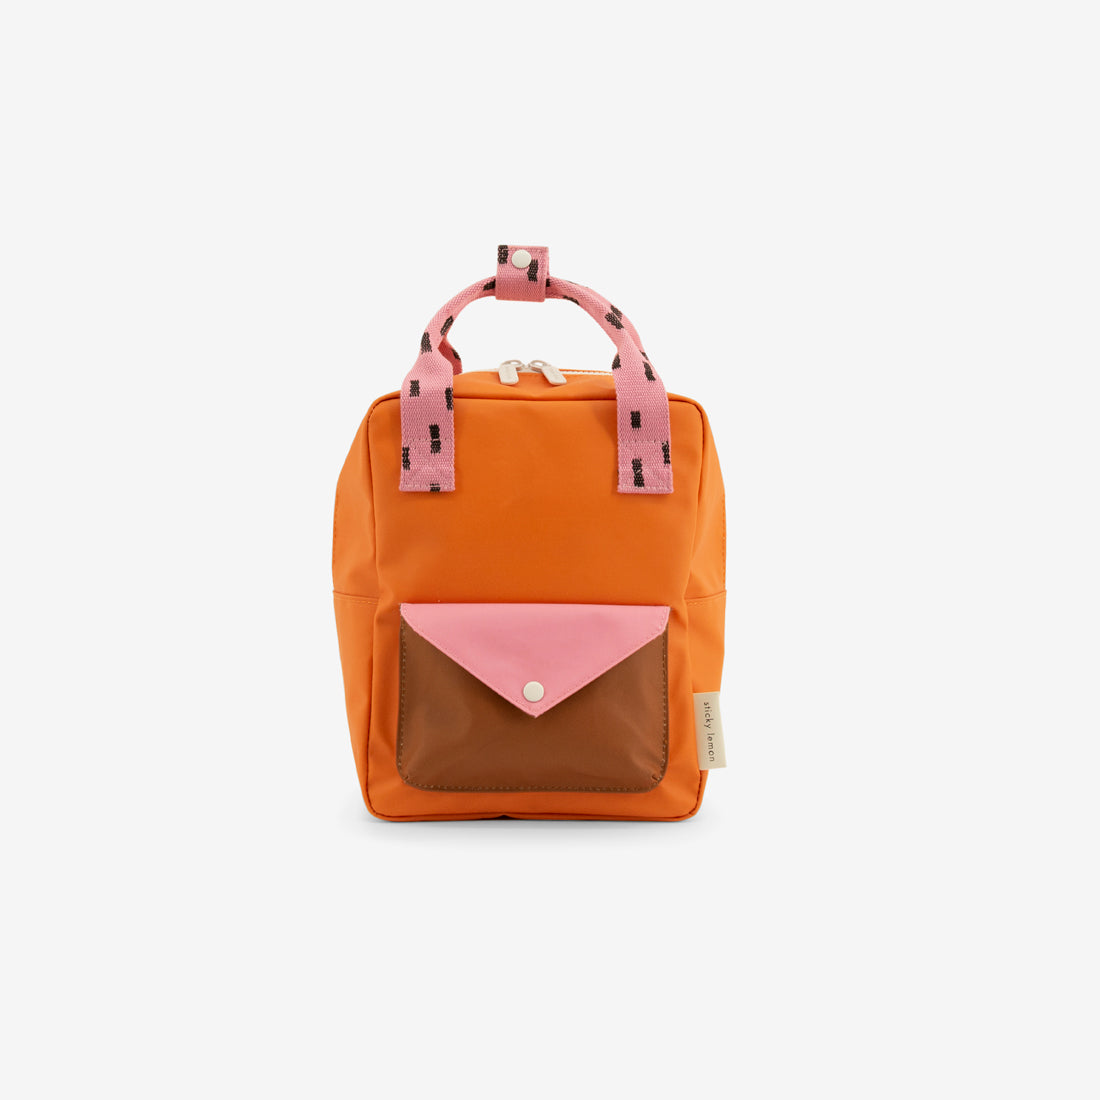 Small Backpack - Carrot Orange Sprinkles Envelope